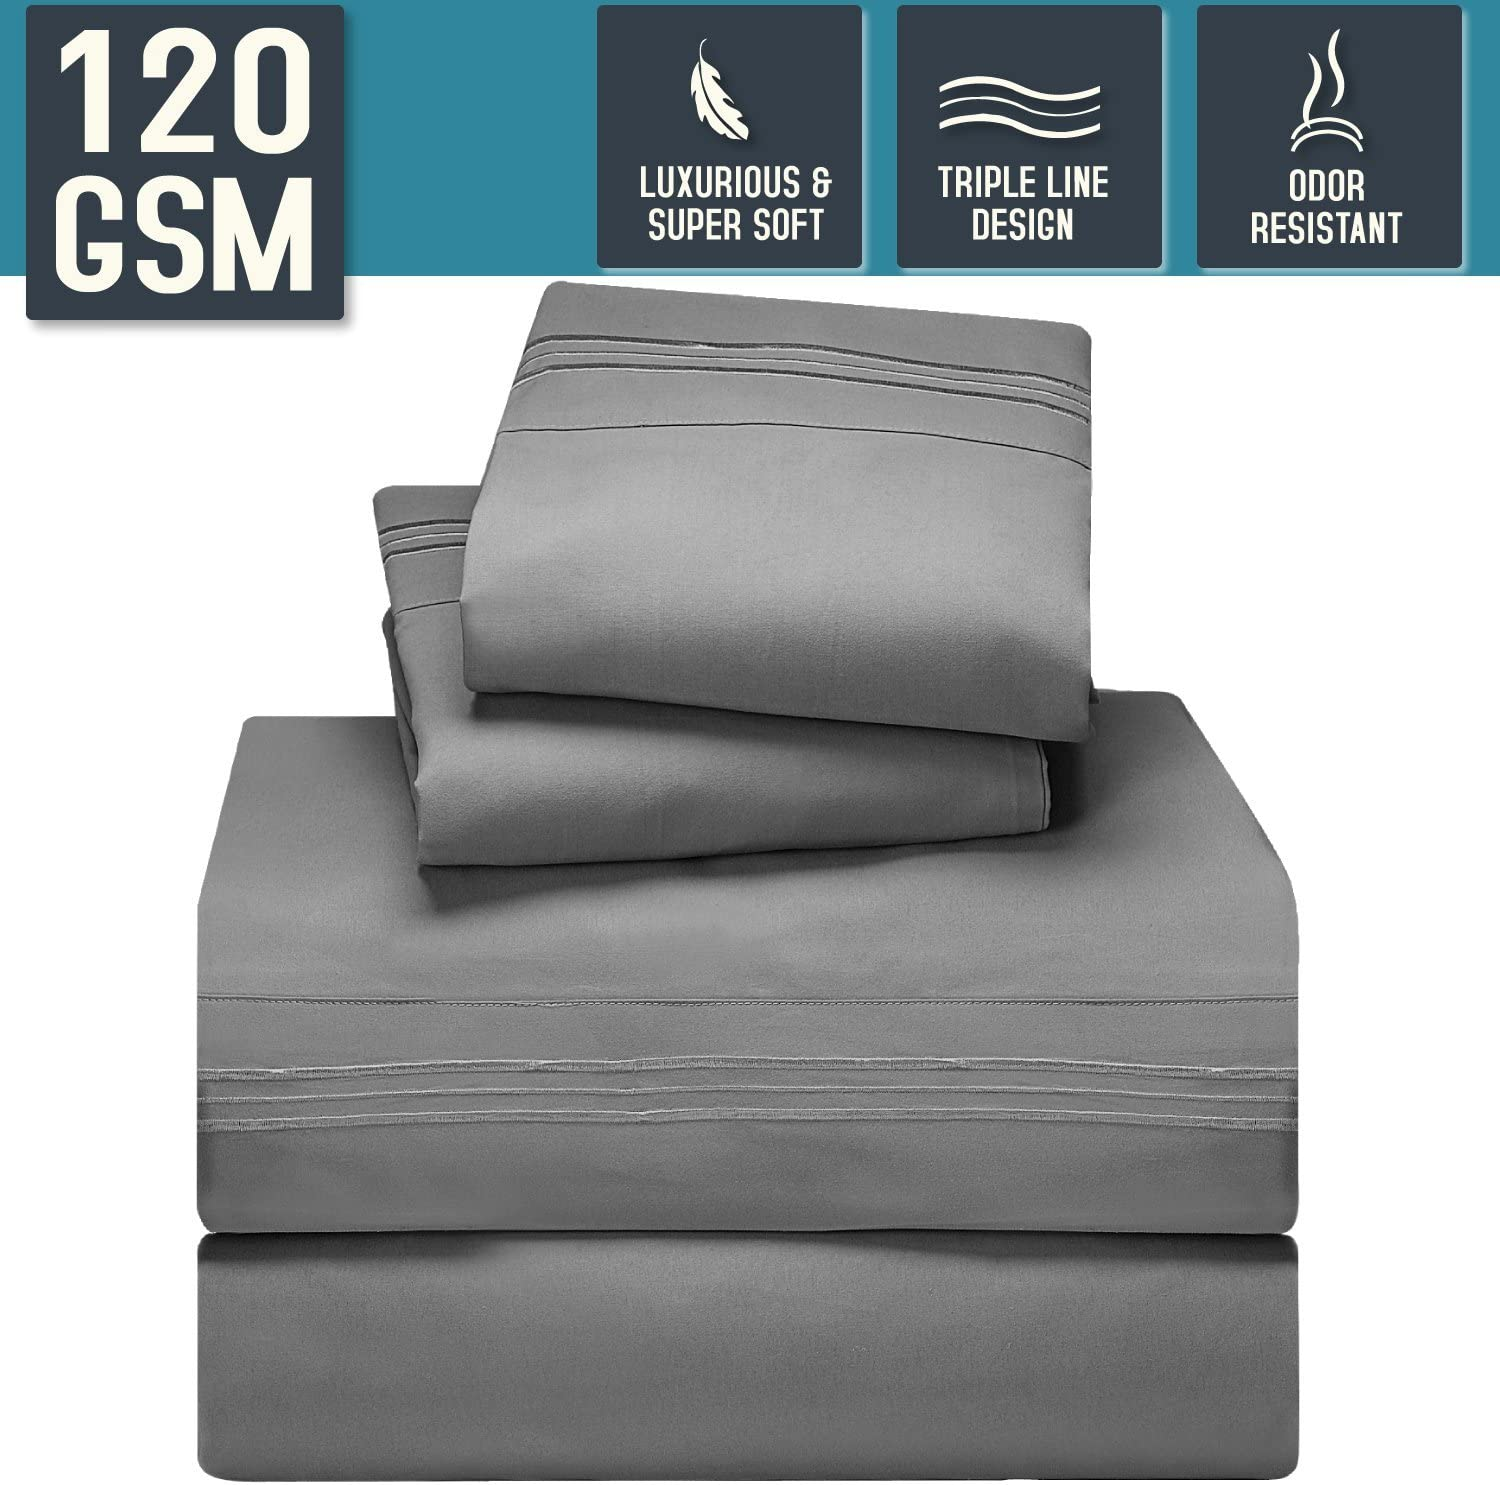 Nestl Bedding Bed Sheet Set, Queen Size, Gray, Super Soft 120 GSM - Anti Odor Treatment - Corner Elastic Strap for a Snug Fit, Matching 3 Line Embroidery on Pillowcases and Flat Sheet